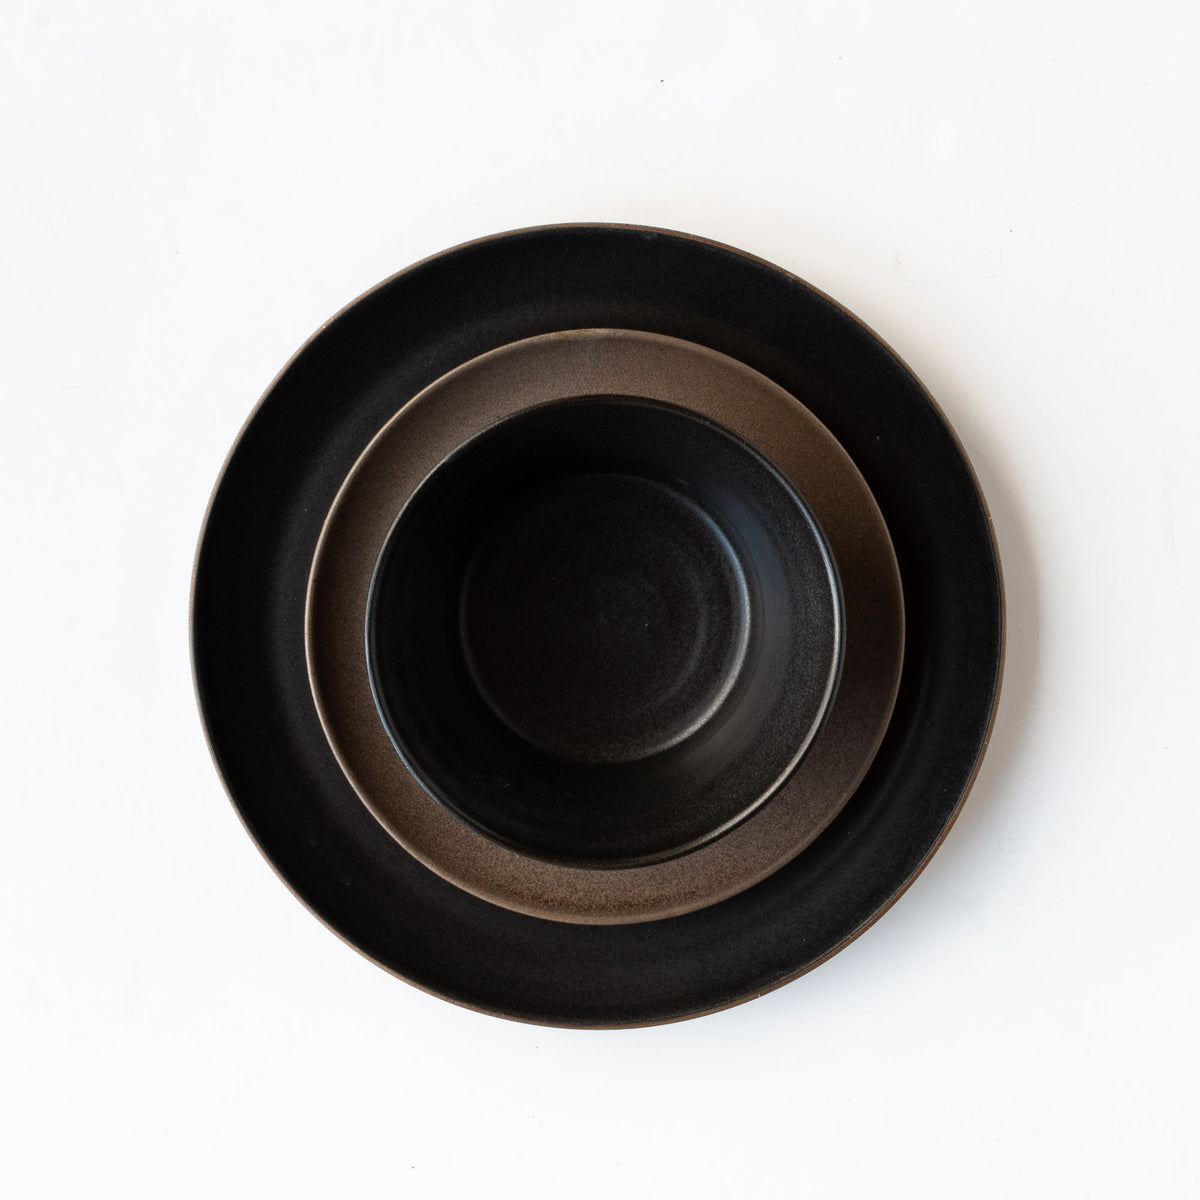 Handmade Grey Stoneware Dinnerware Set - Sold by Chic & Basta